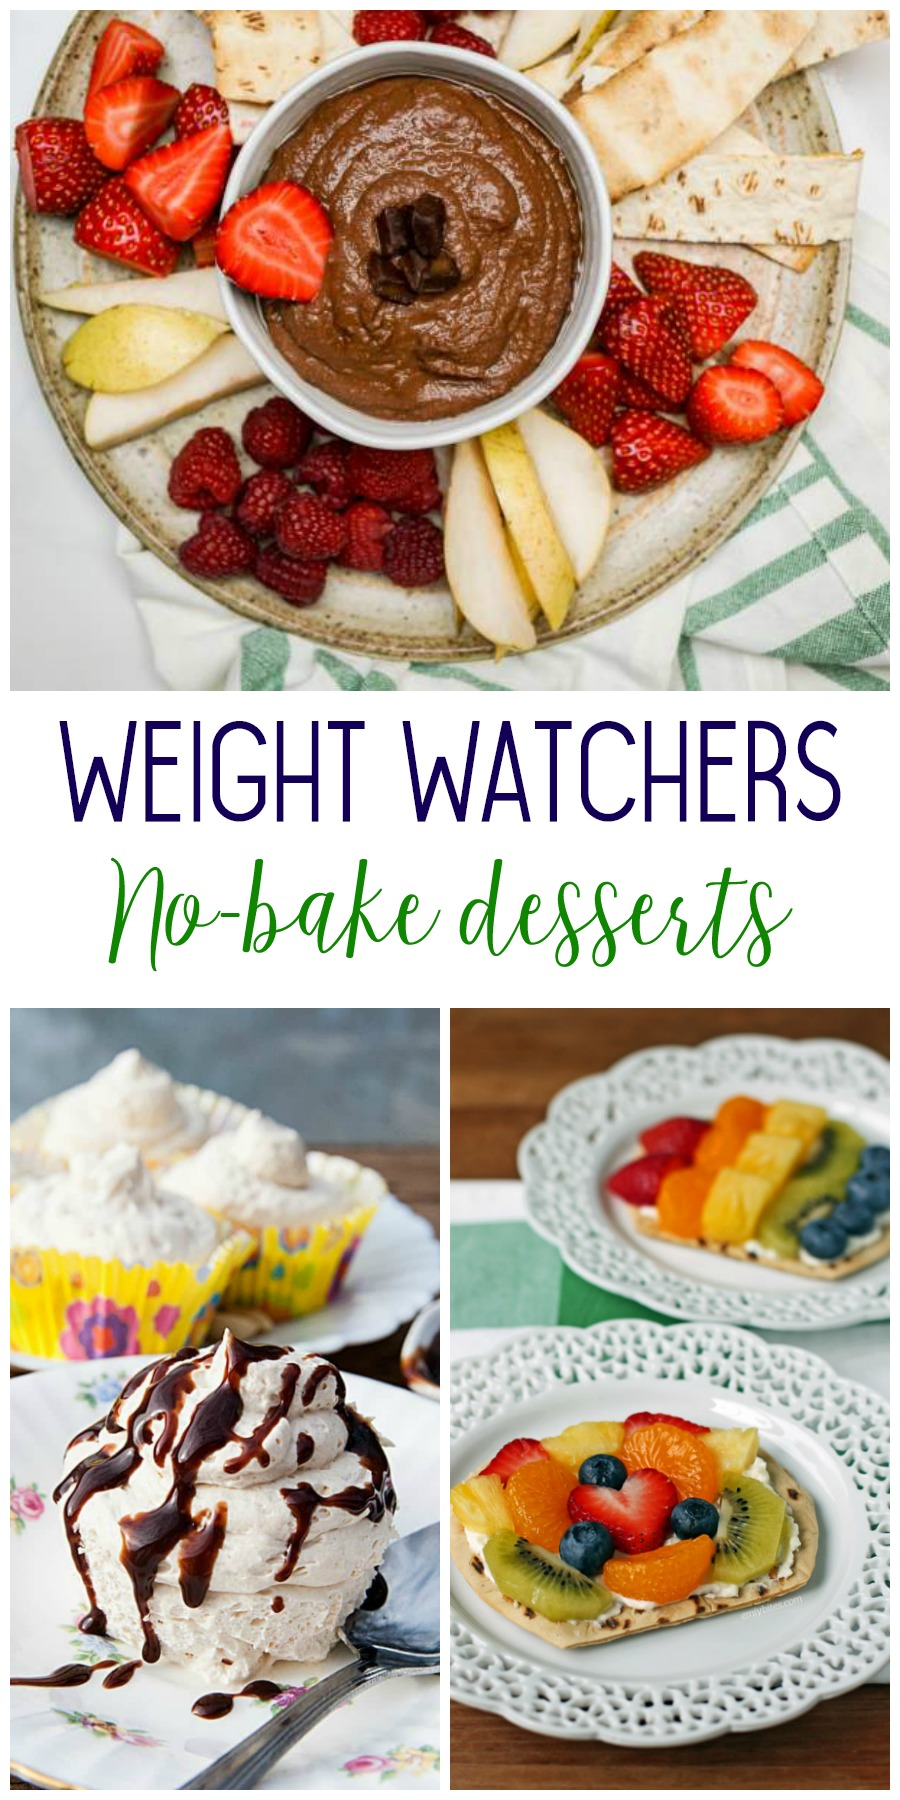 Weight watchers no bake desserts